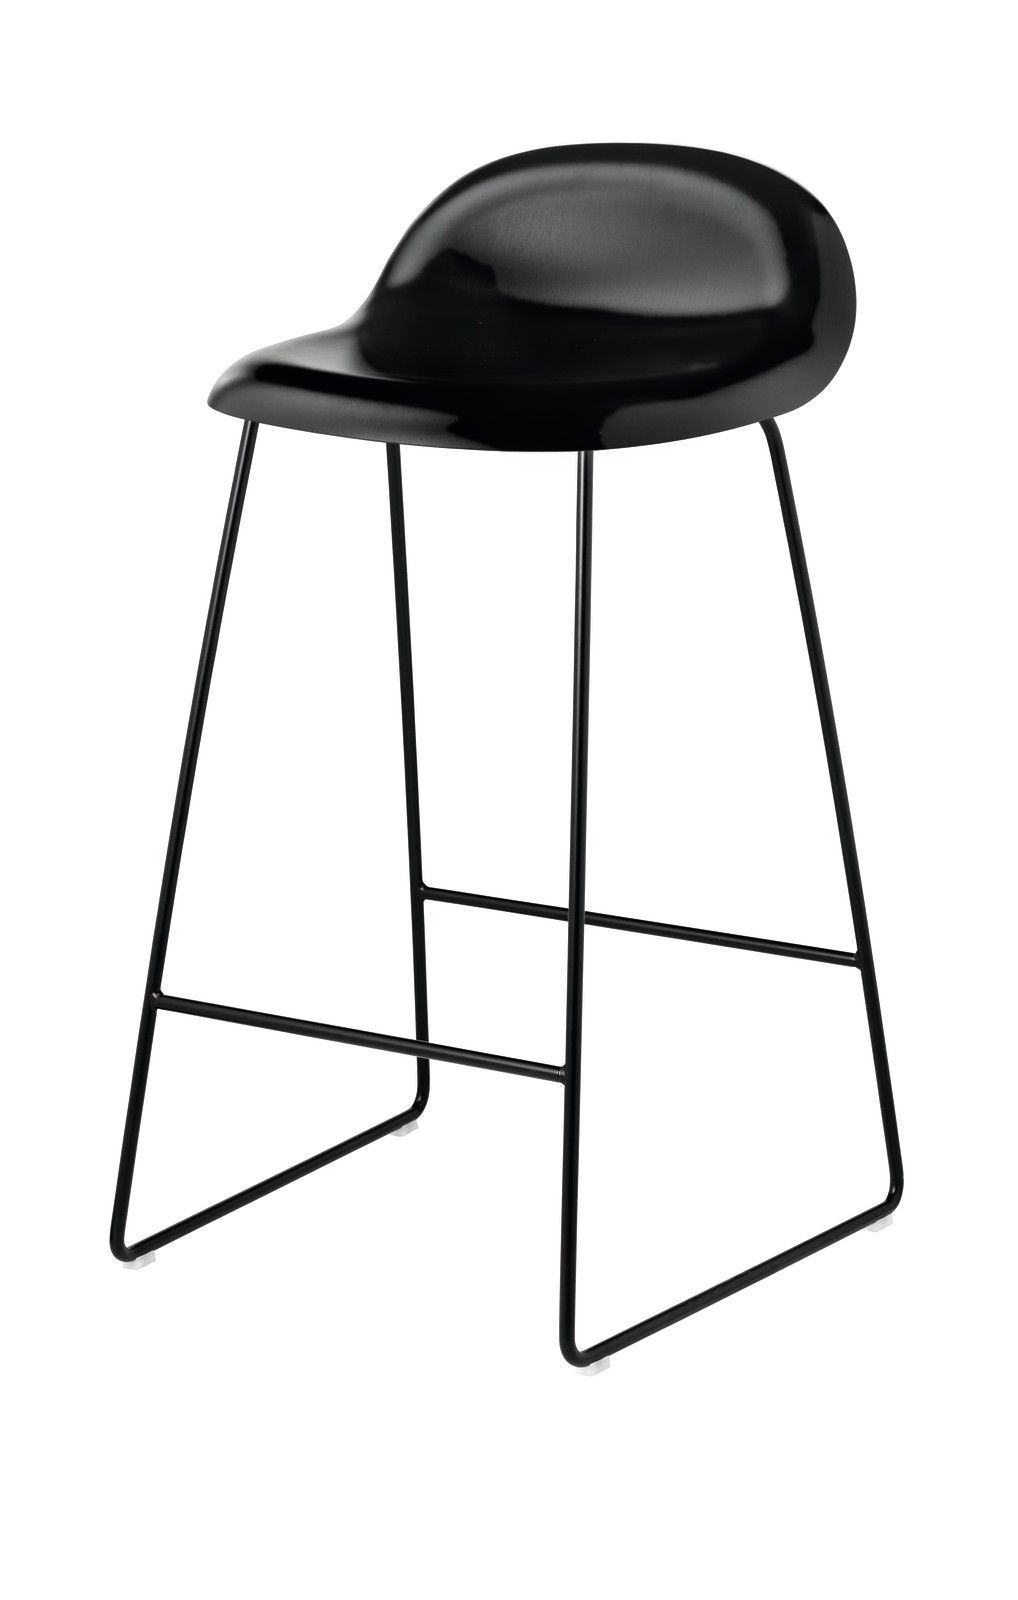 Gubi 3D Sledge Base Counter Stool - Unupholstered Gubi Wood Black Stained Birch, Gubi Metal Black